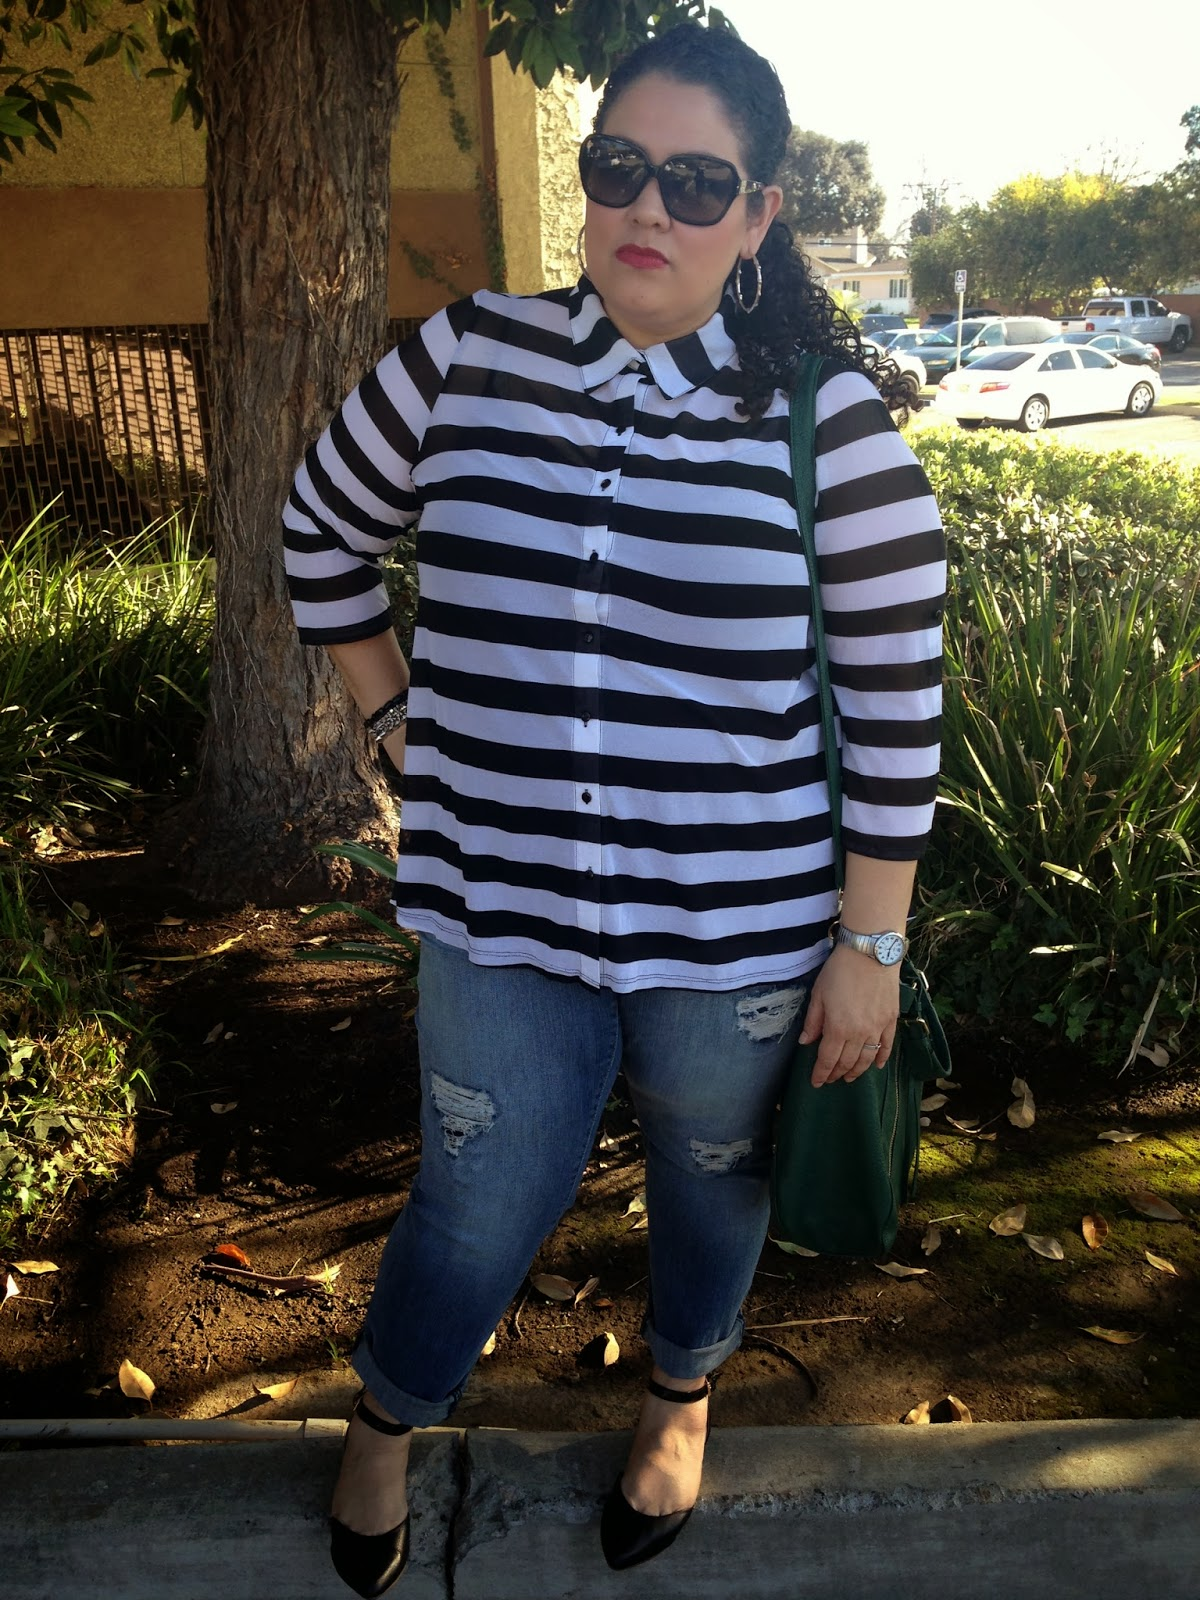 plus size, latina style blogger, plus size fashion, boyfriend jeans, stripes, black, white, trend